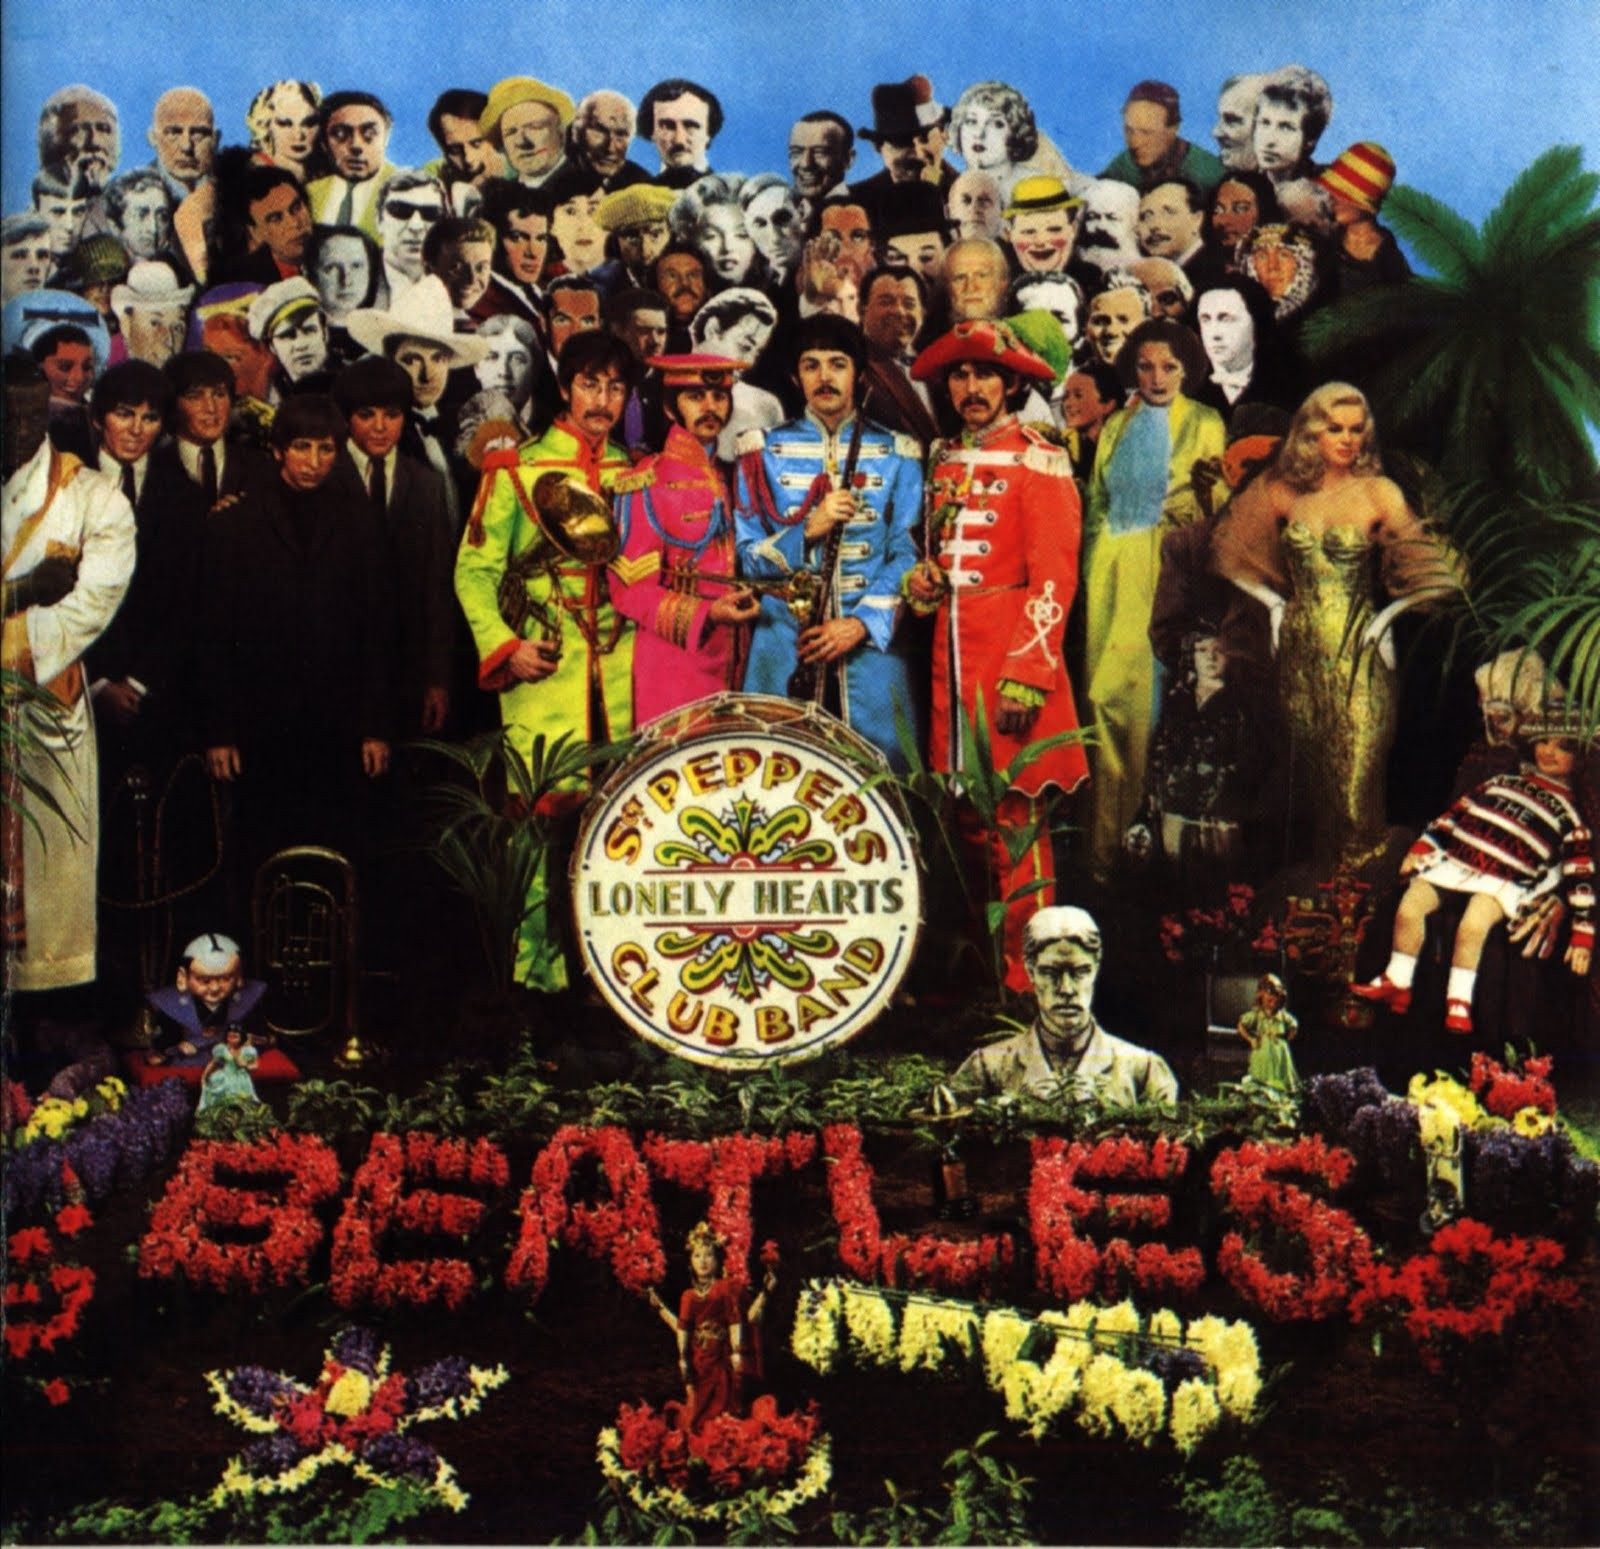 01 sgt pepper 39 s lonely hearts club band the beatles cansei do mainstream. Black Bedroom Furniture Sets. Home Design Ideas